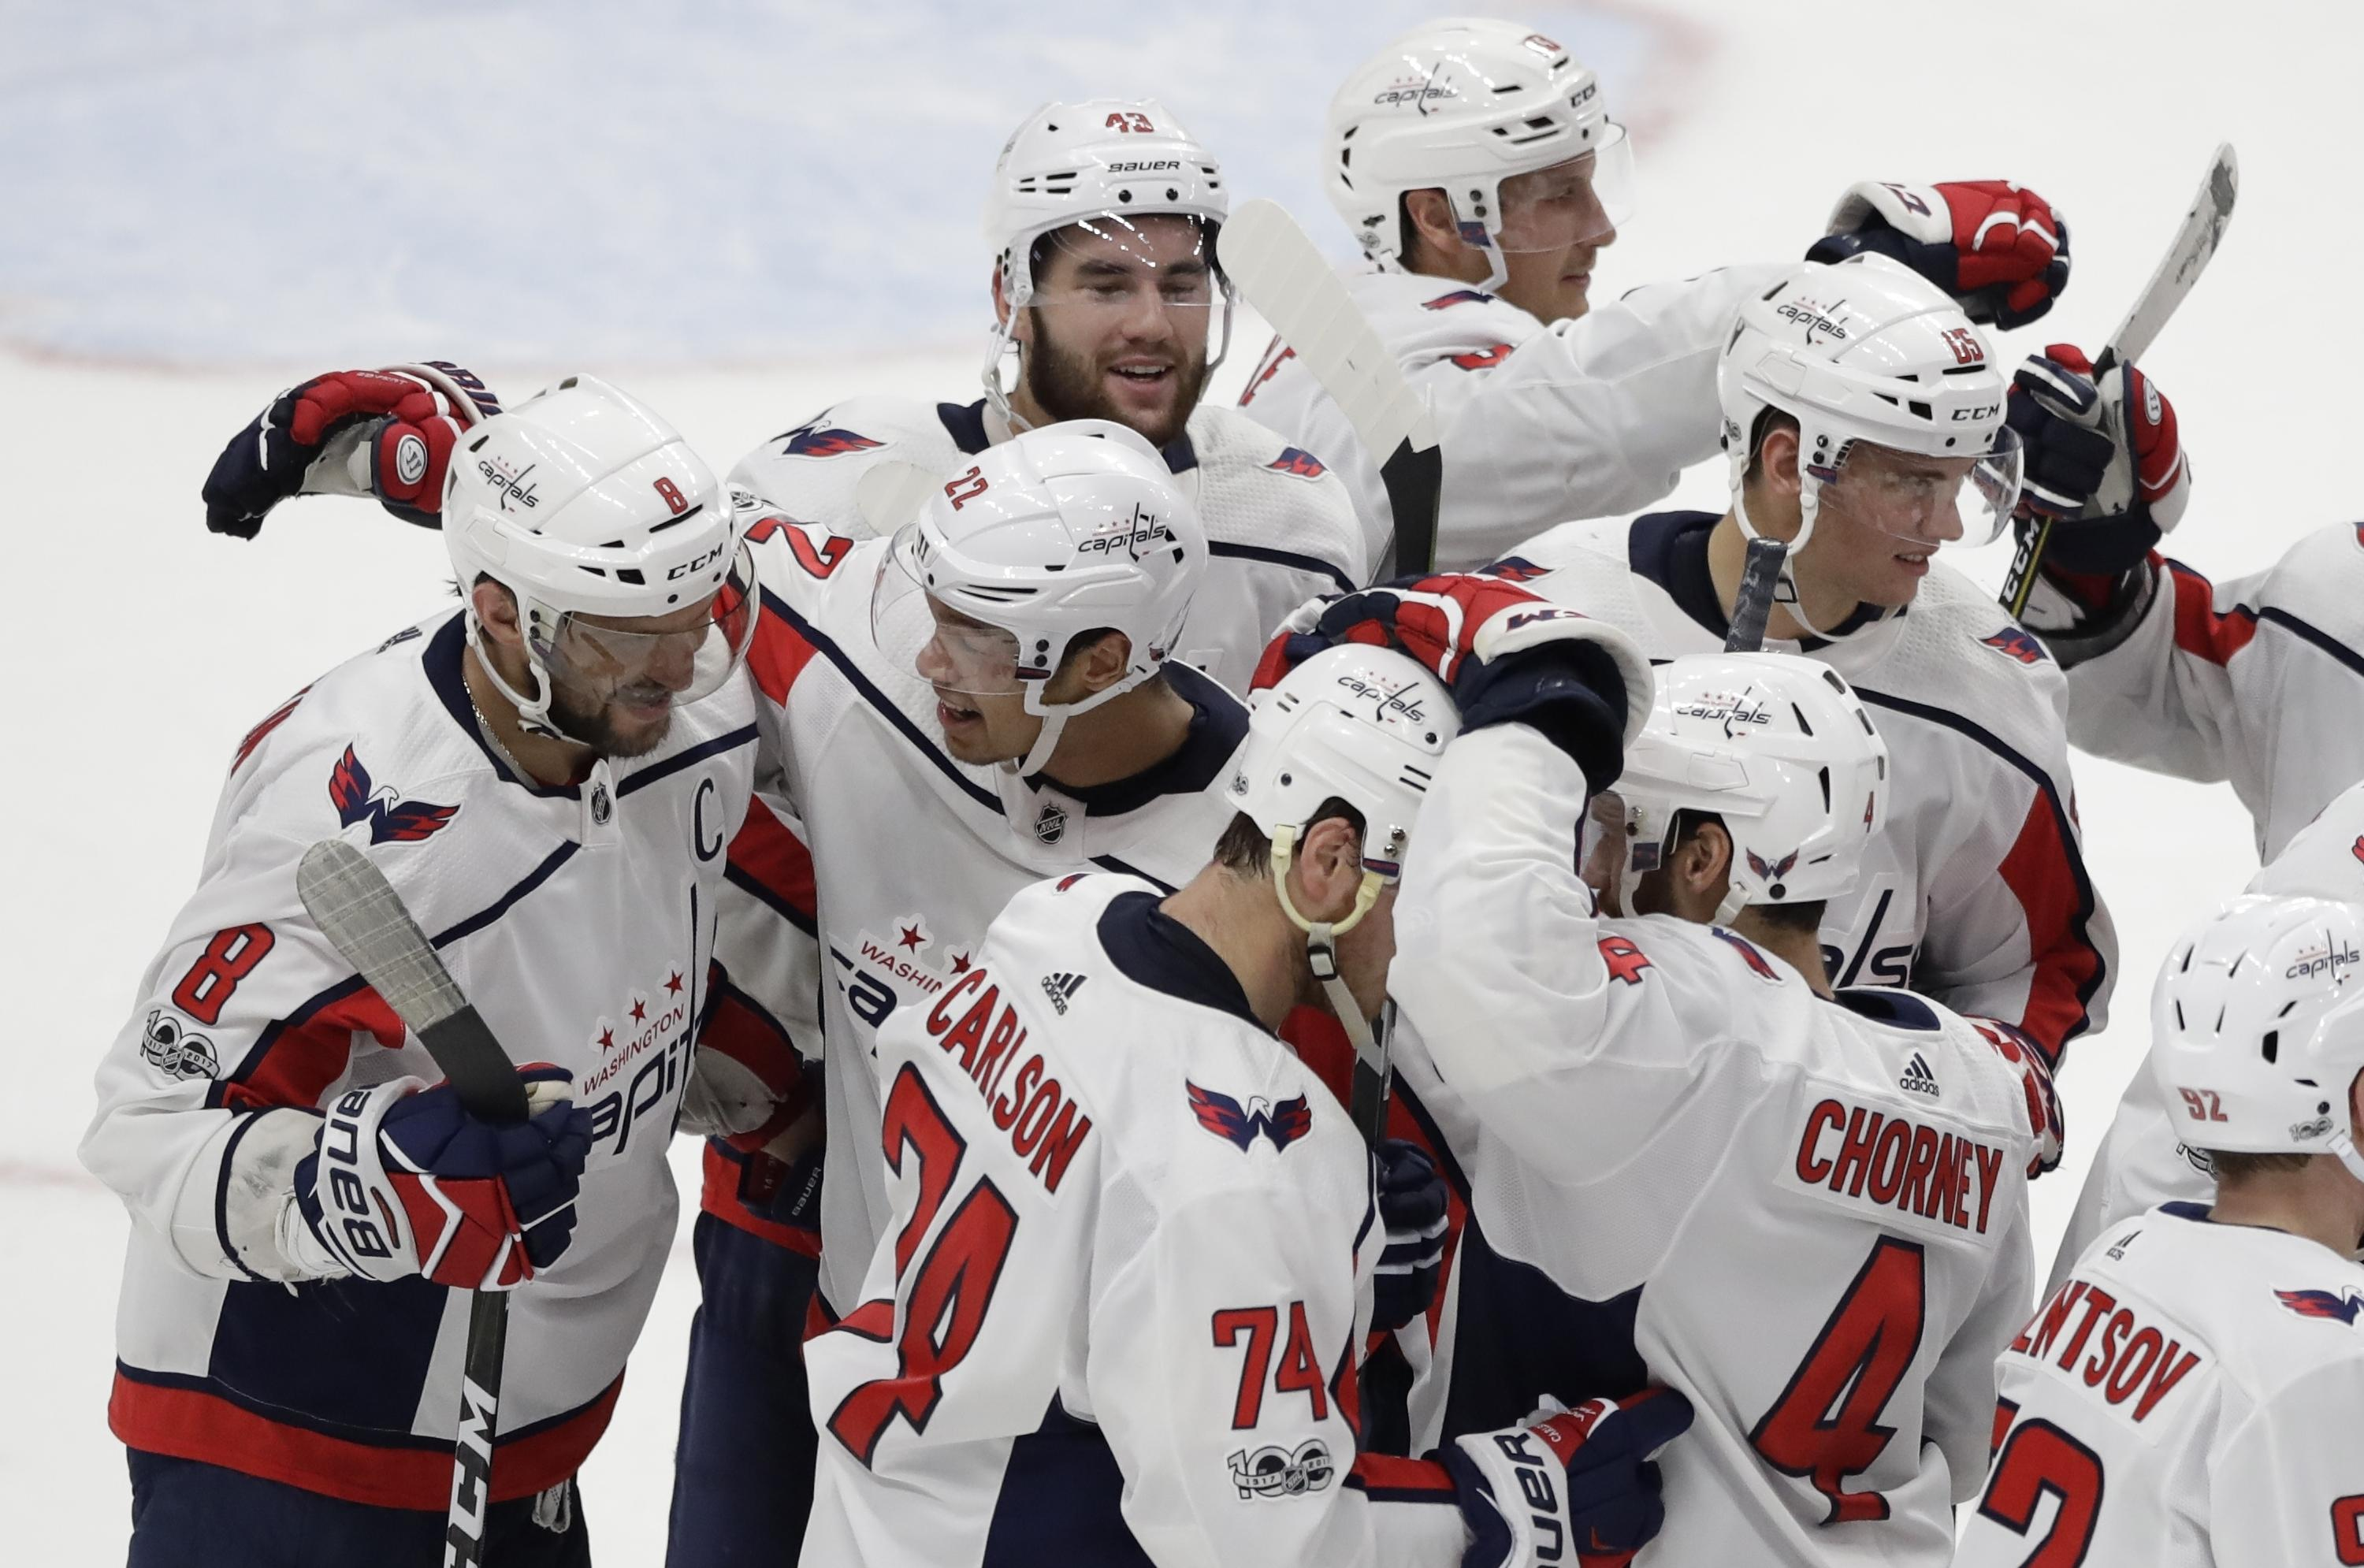 56a25a0795a Washington Capitals left wing Alex Ovechkin (far left) is congratulated by  teammates after scoring